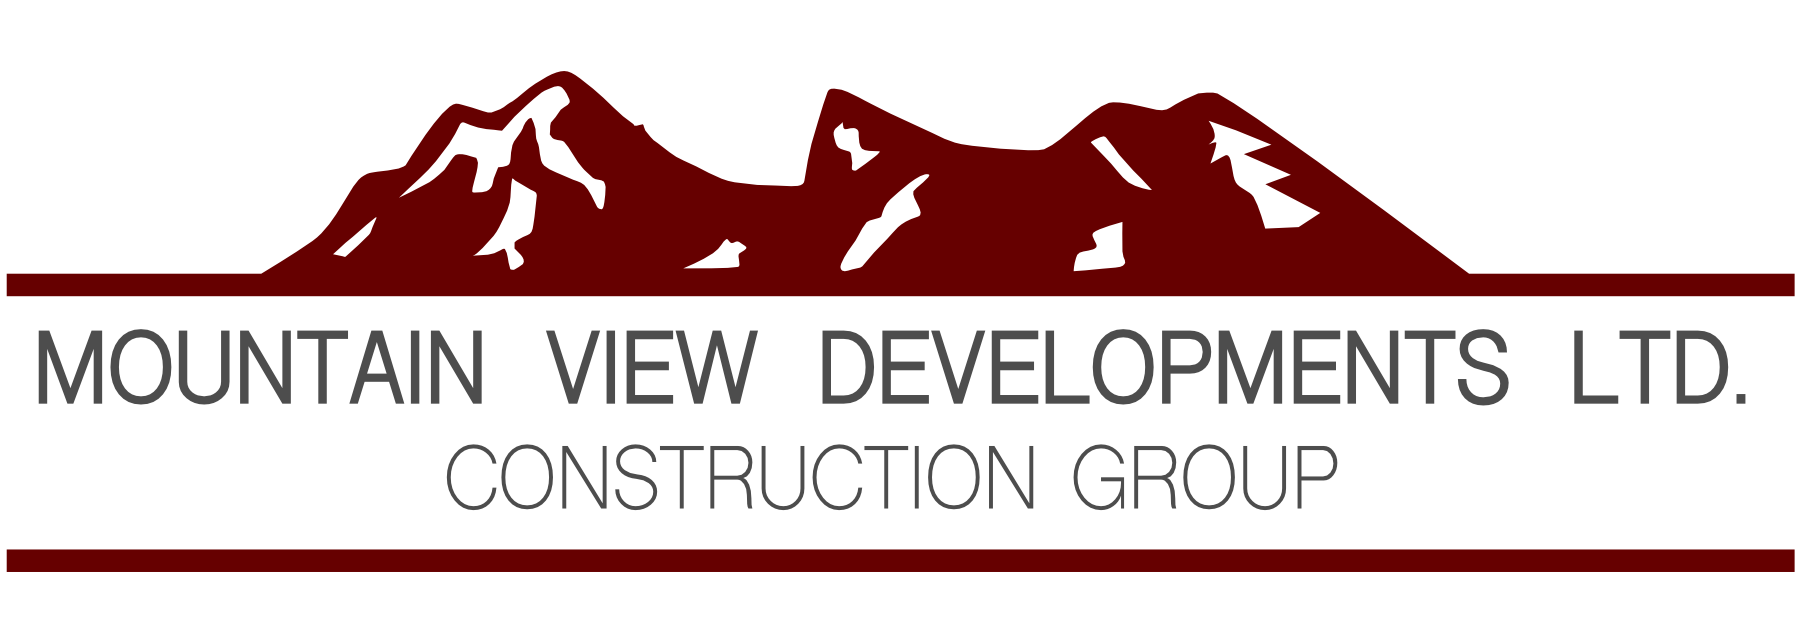 Mountain View Developments Ltd.